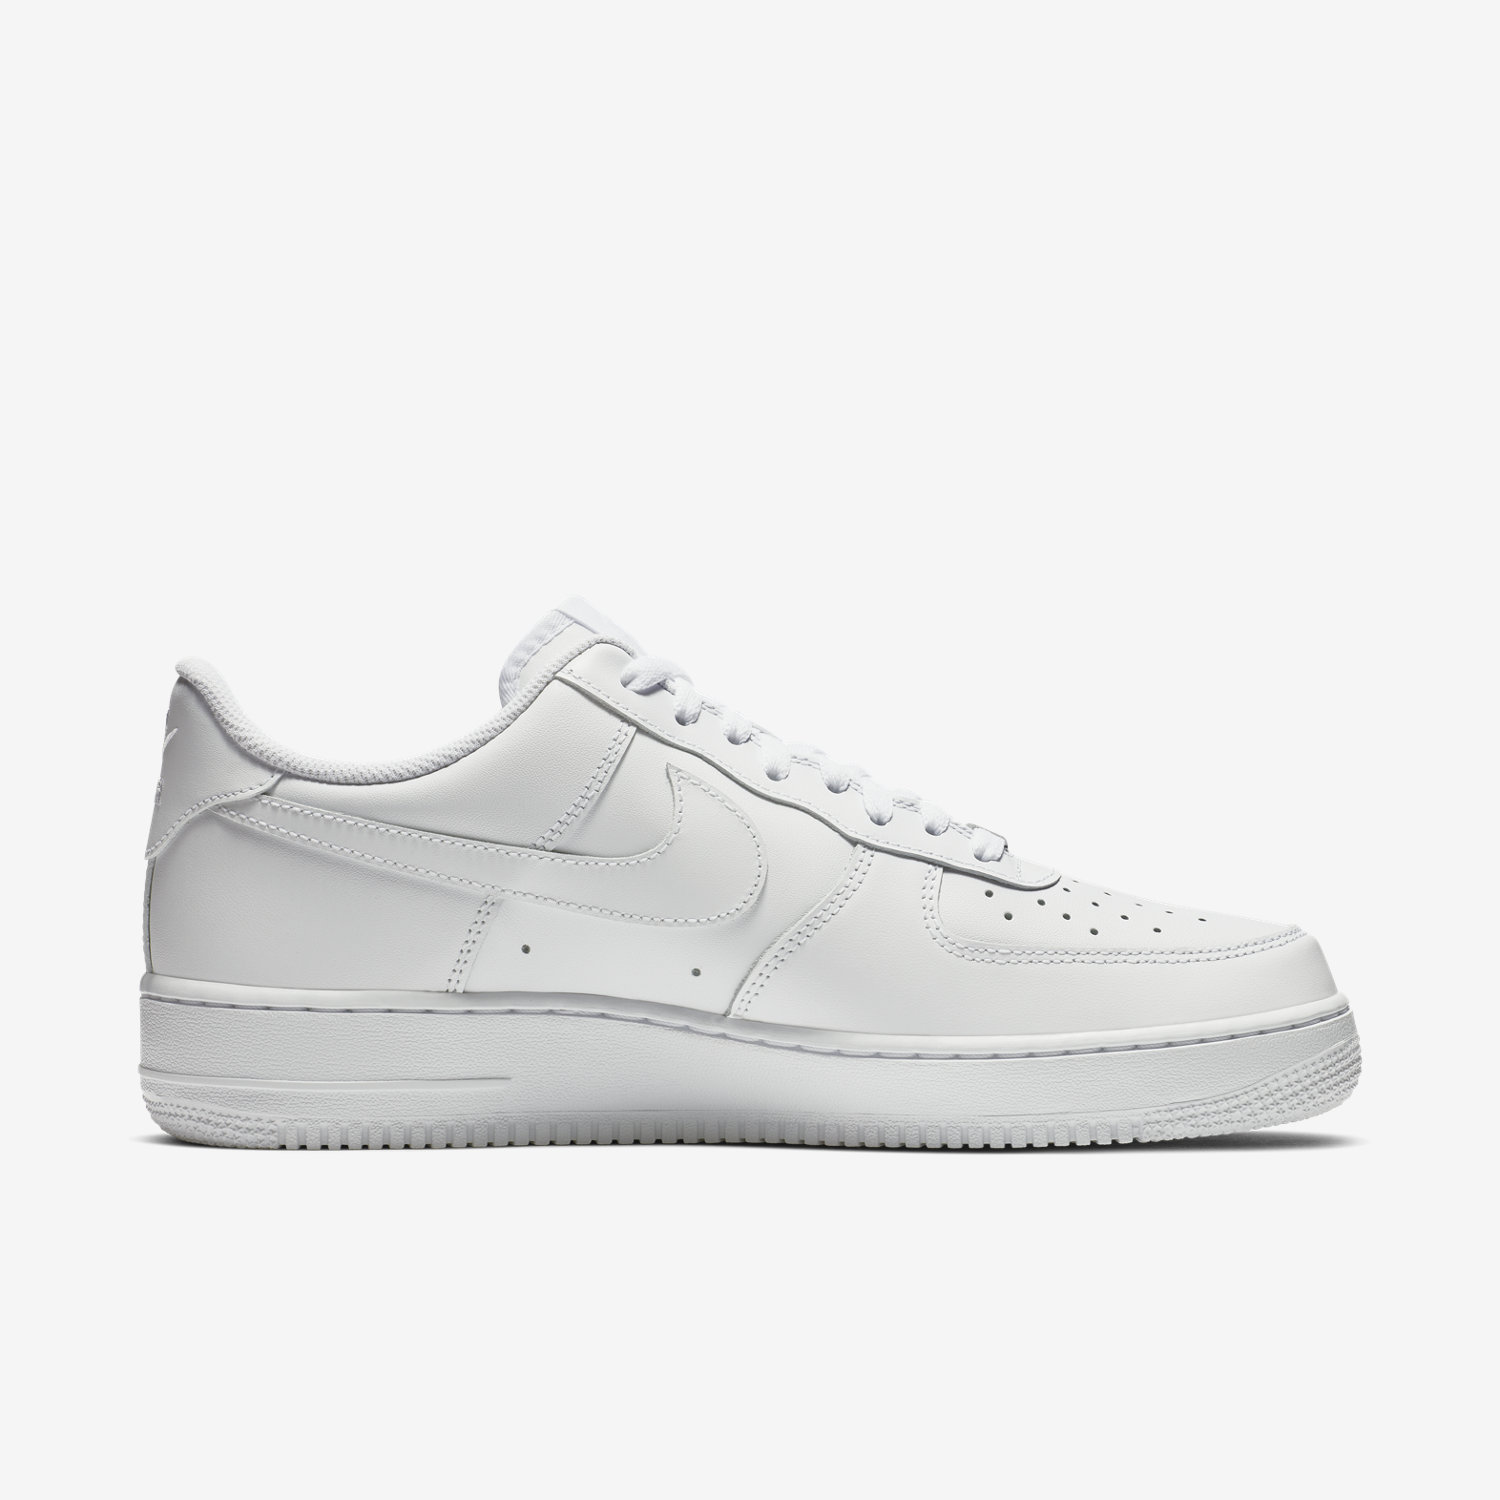 Nike air force 1 07 black and white dresses